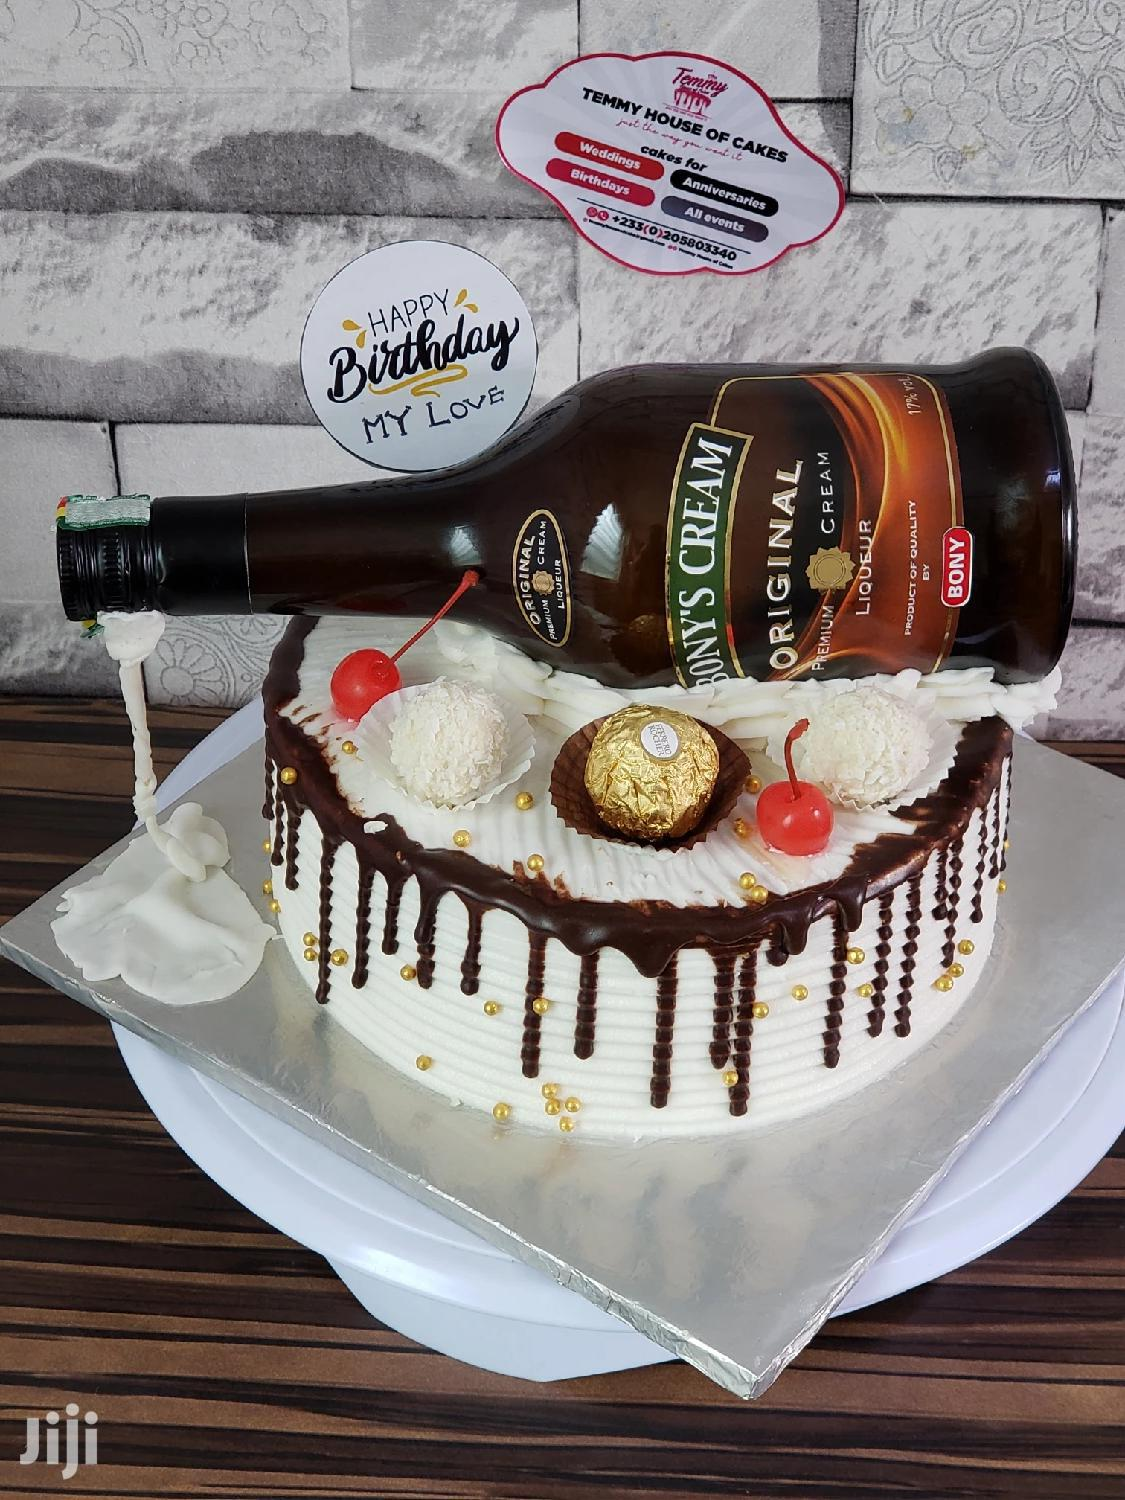 Cakes Wedding Cakes   Wedding Venues & Services for sale in Achimota, Greater Accra, Ghana